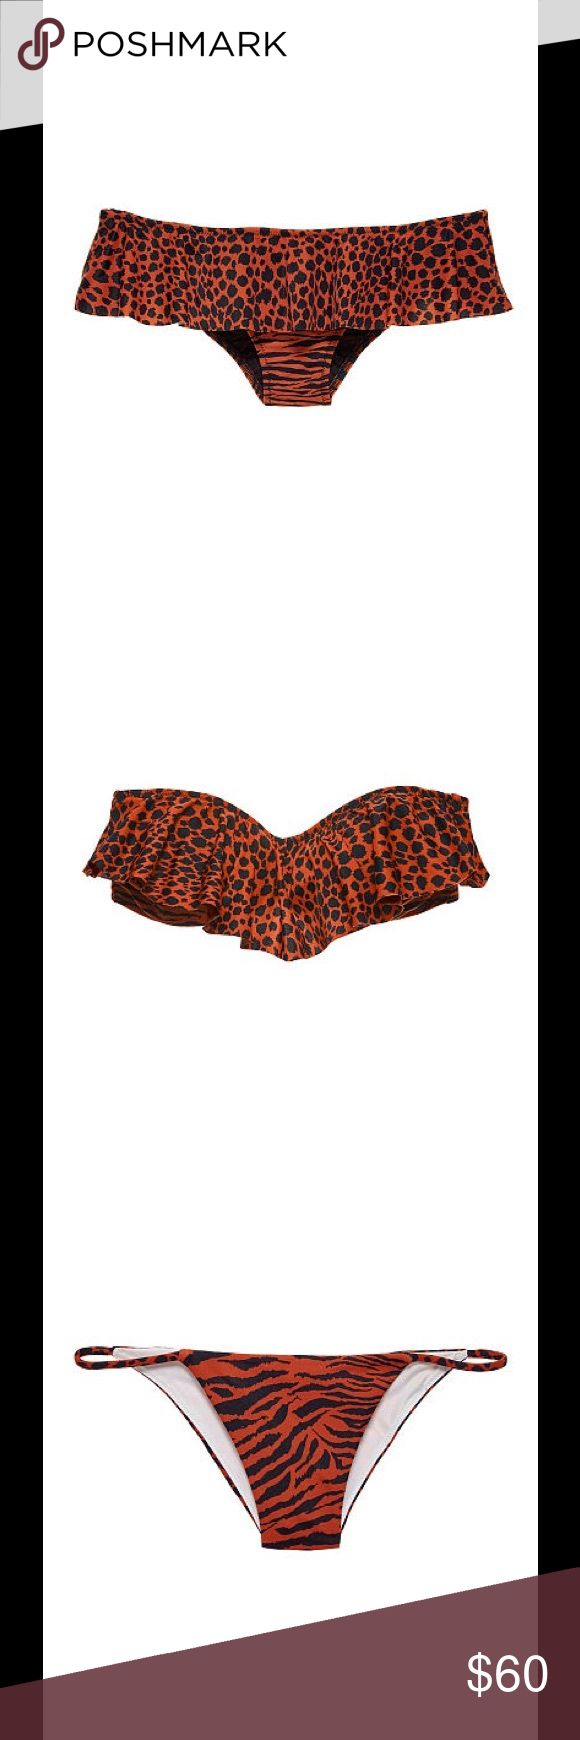 Victoria Secret bathing suit set Patchouli Cheetah Flounce Bandeau & Flounce Cheeky set in animal print. Top: strapless suit that's wrapped in a ruffle. Removable padding for no show-through Back hook closure Removable halter strap Hand wash Imported nylon/spandex.                                          Bottom: Fun in the sun starts with this cheeky suit, wrapped in a ruffle and cut to reveal. Low rise Cheeky coverage: Medium back, reveals a little, but not all Lined In smooth matte fabric…